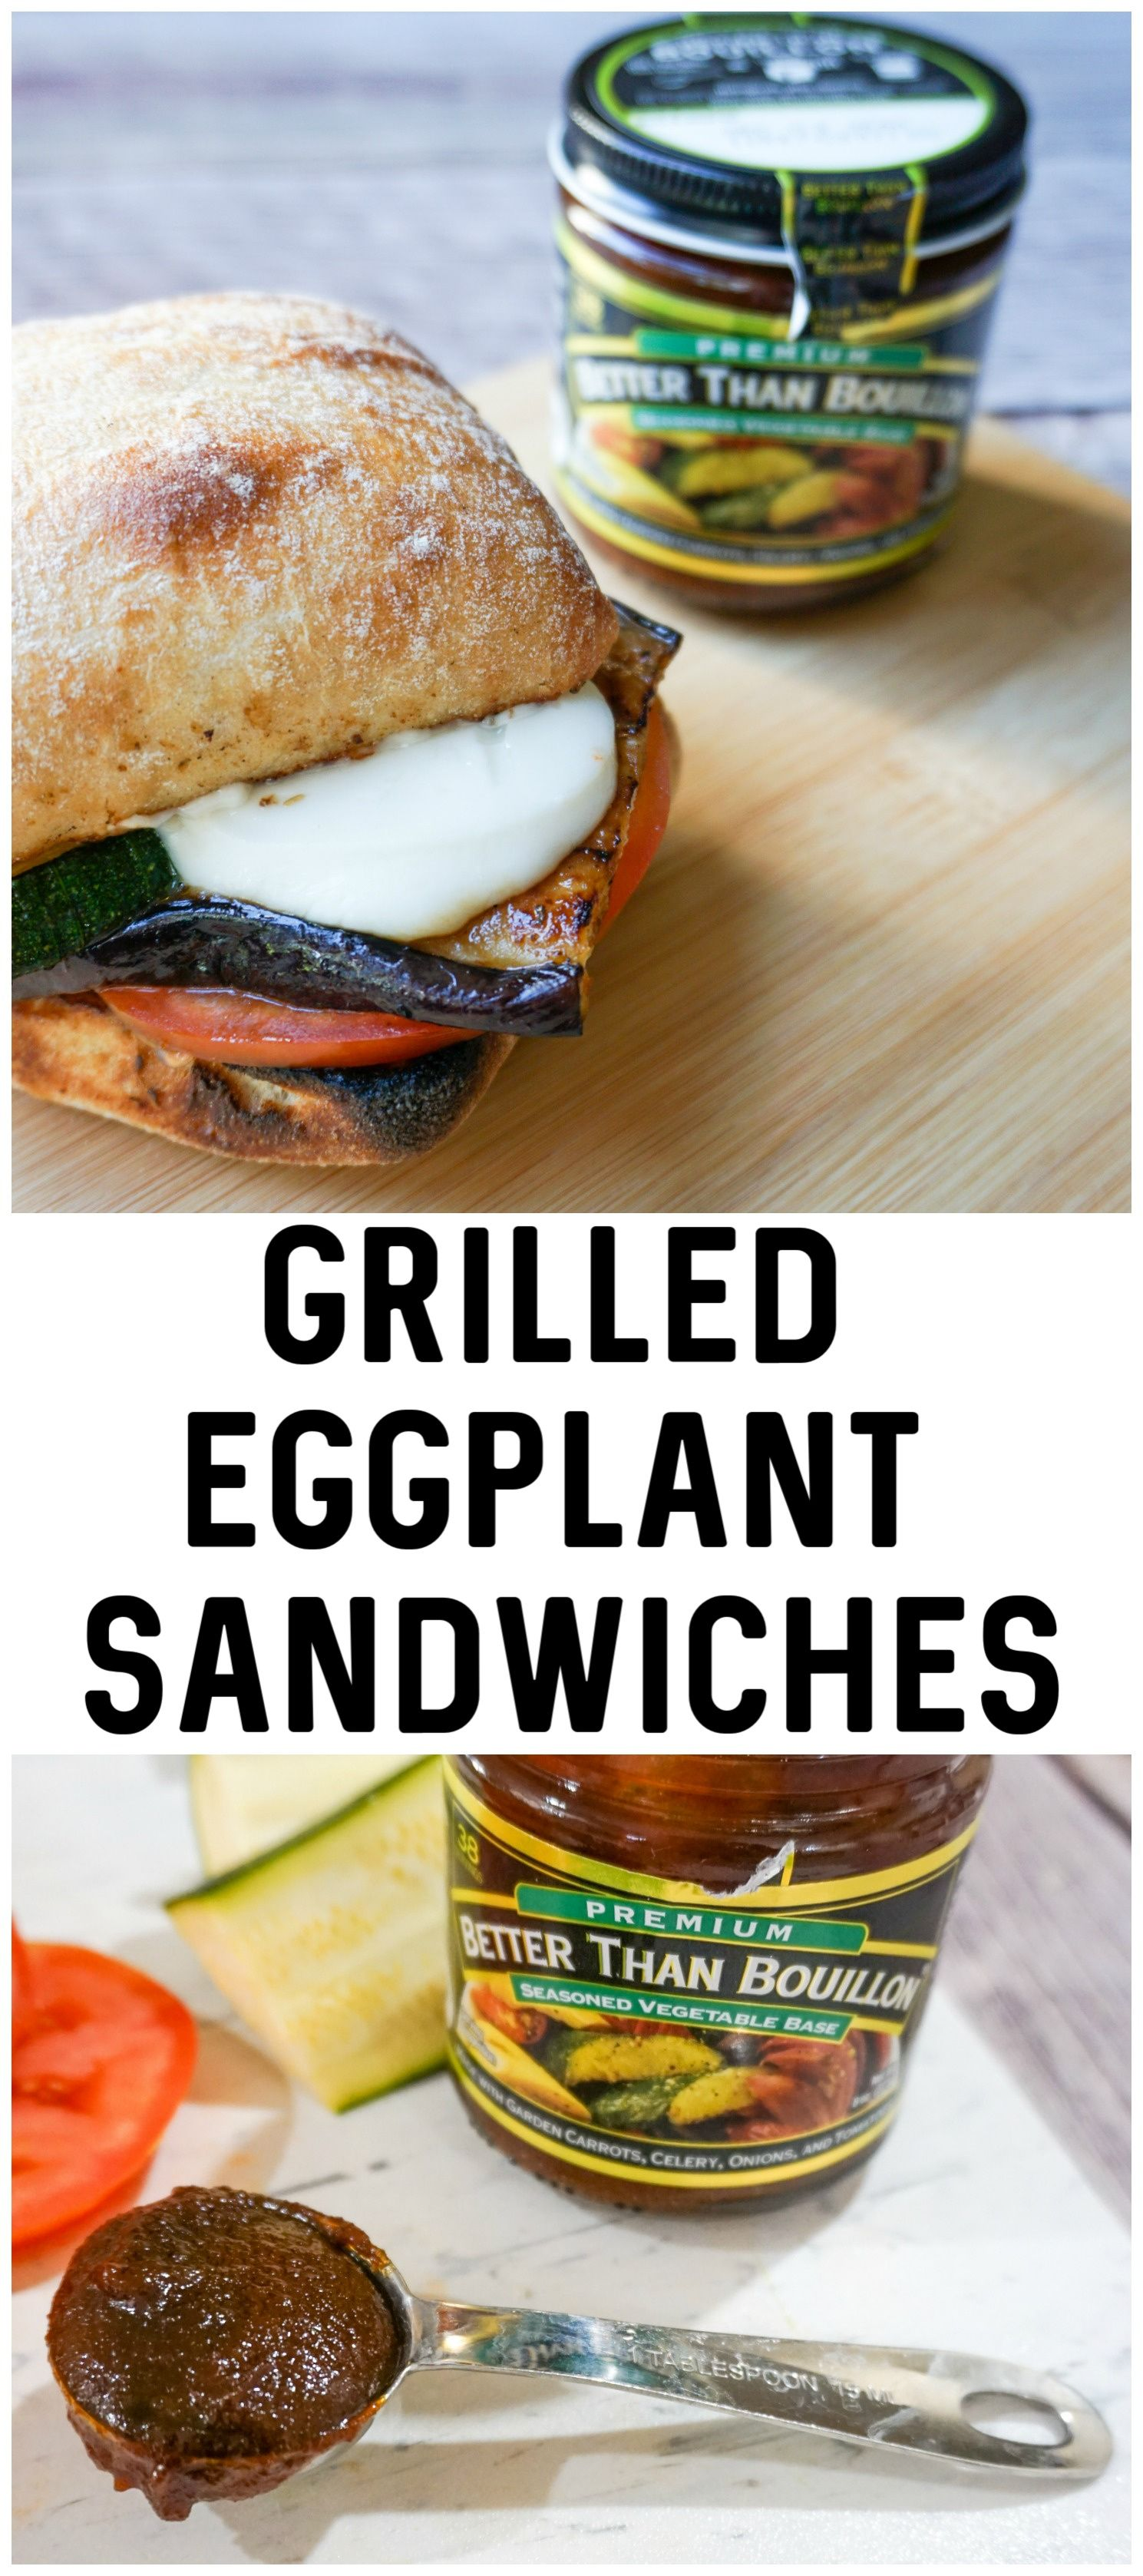 The Best Grilled Eggplant Sandwich Recipe Ever